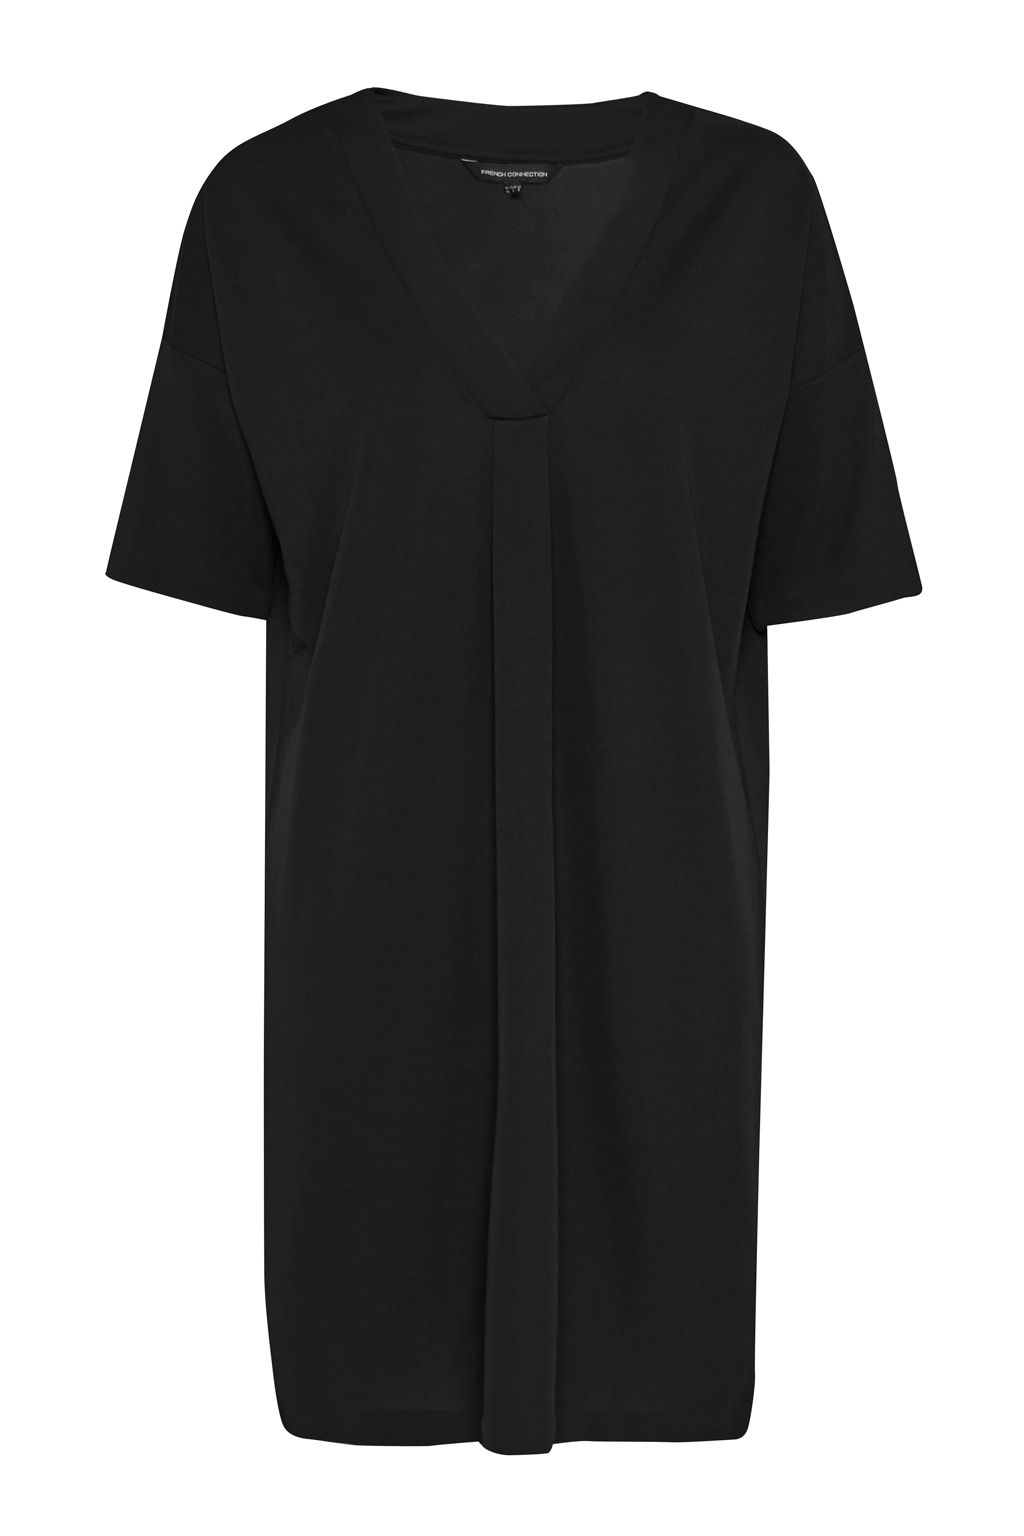 French Connection Bottero Drape V Neck Shift Dress, Black